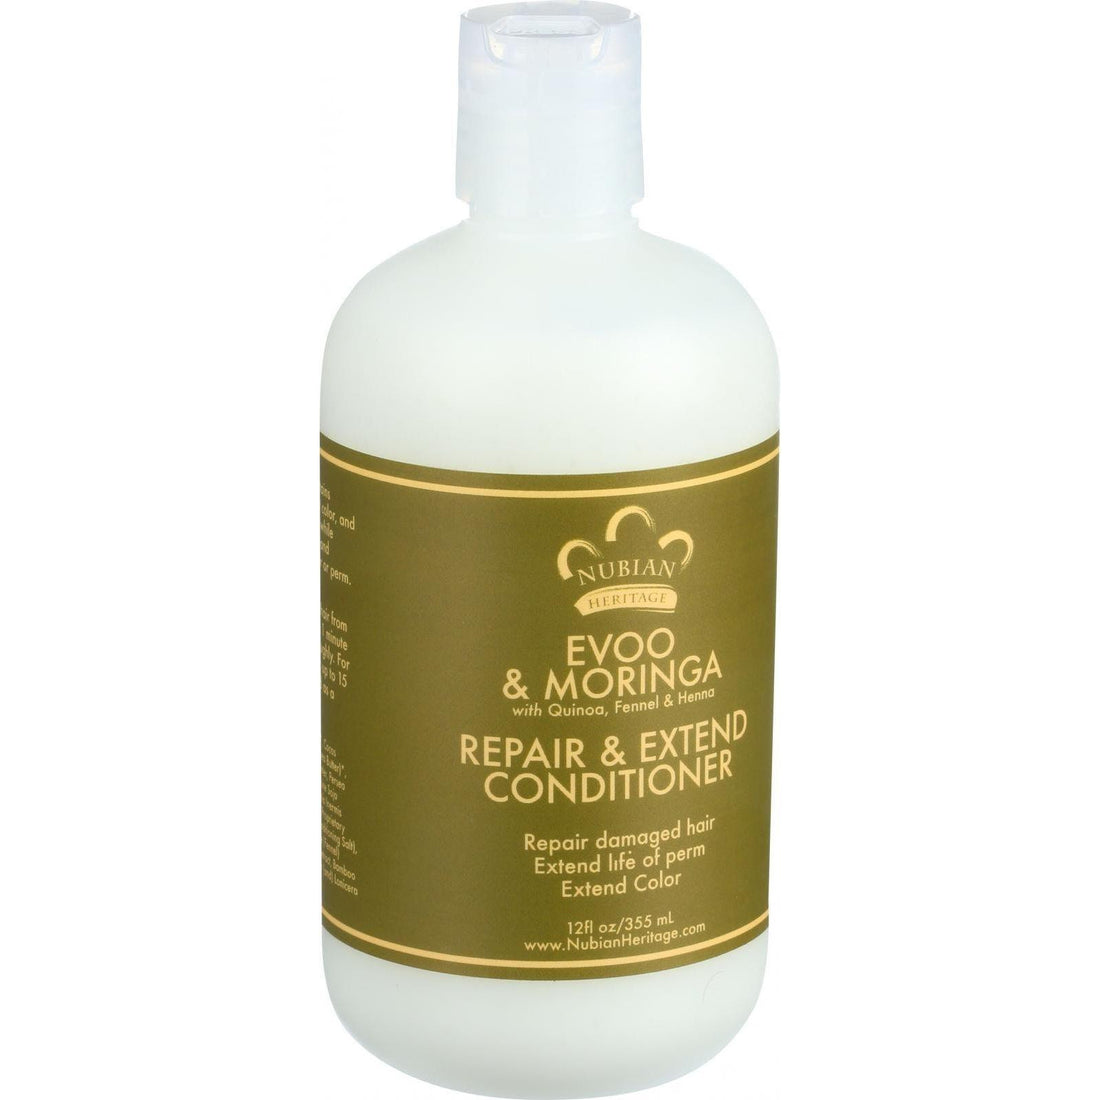 Mother Mantis: Nubian Heritage Conditioner - Evoo And Moringa - Repair And Extend - 12 Oz Nubian Heritage